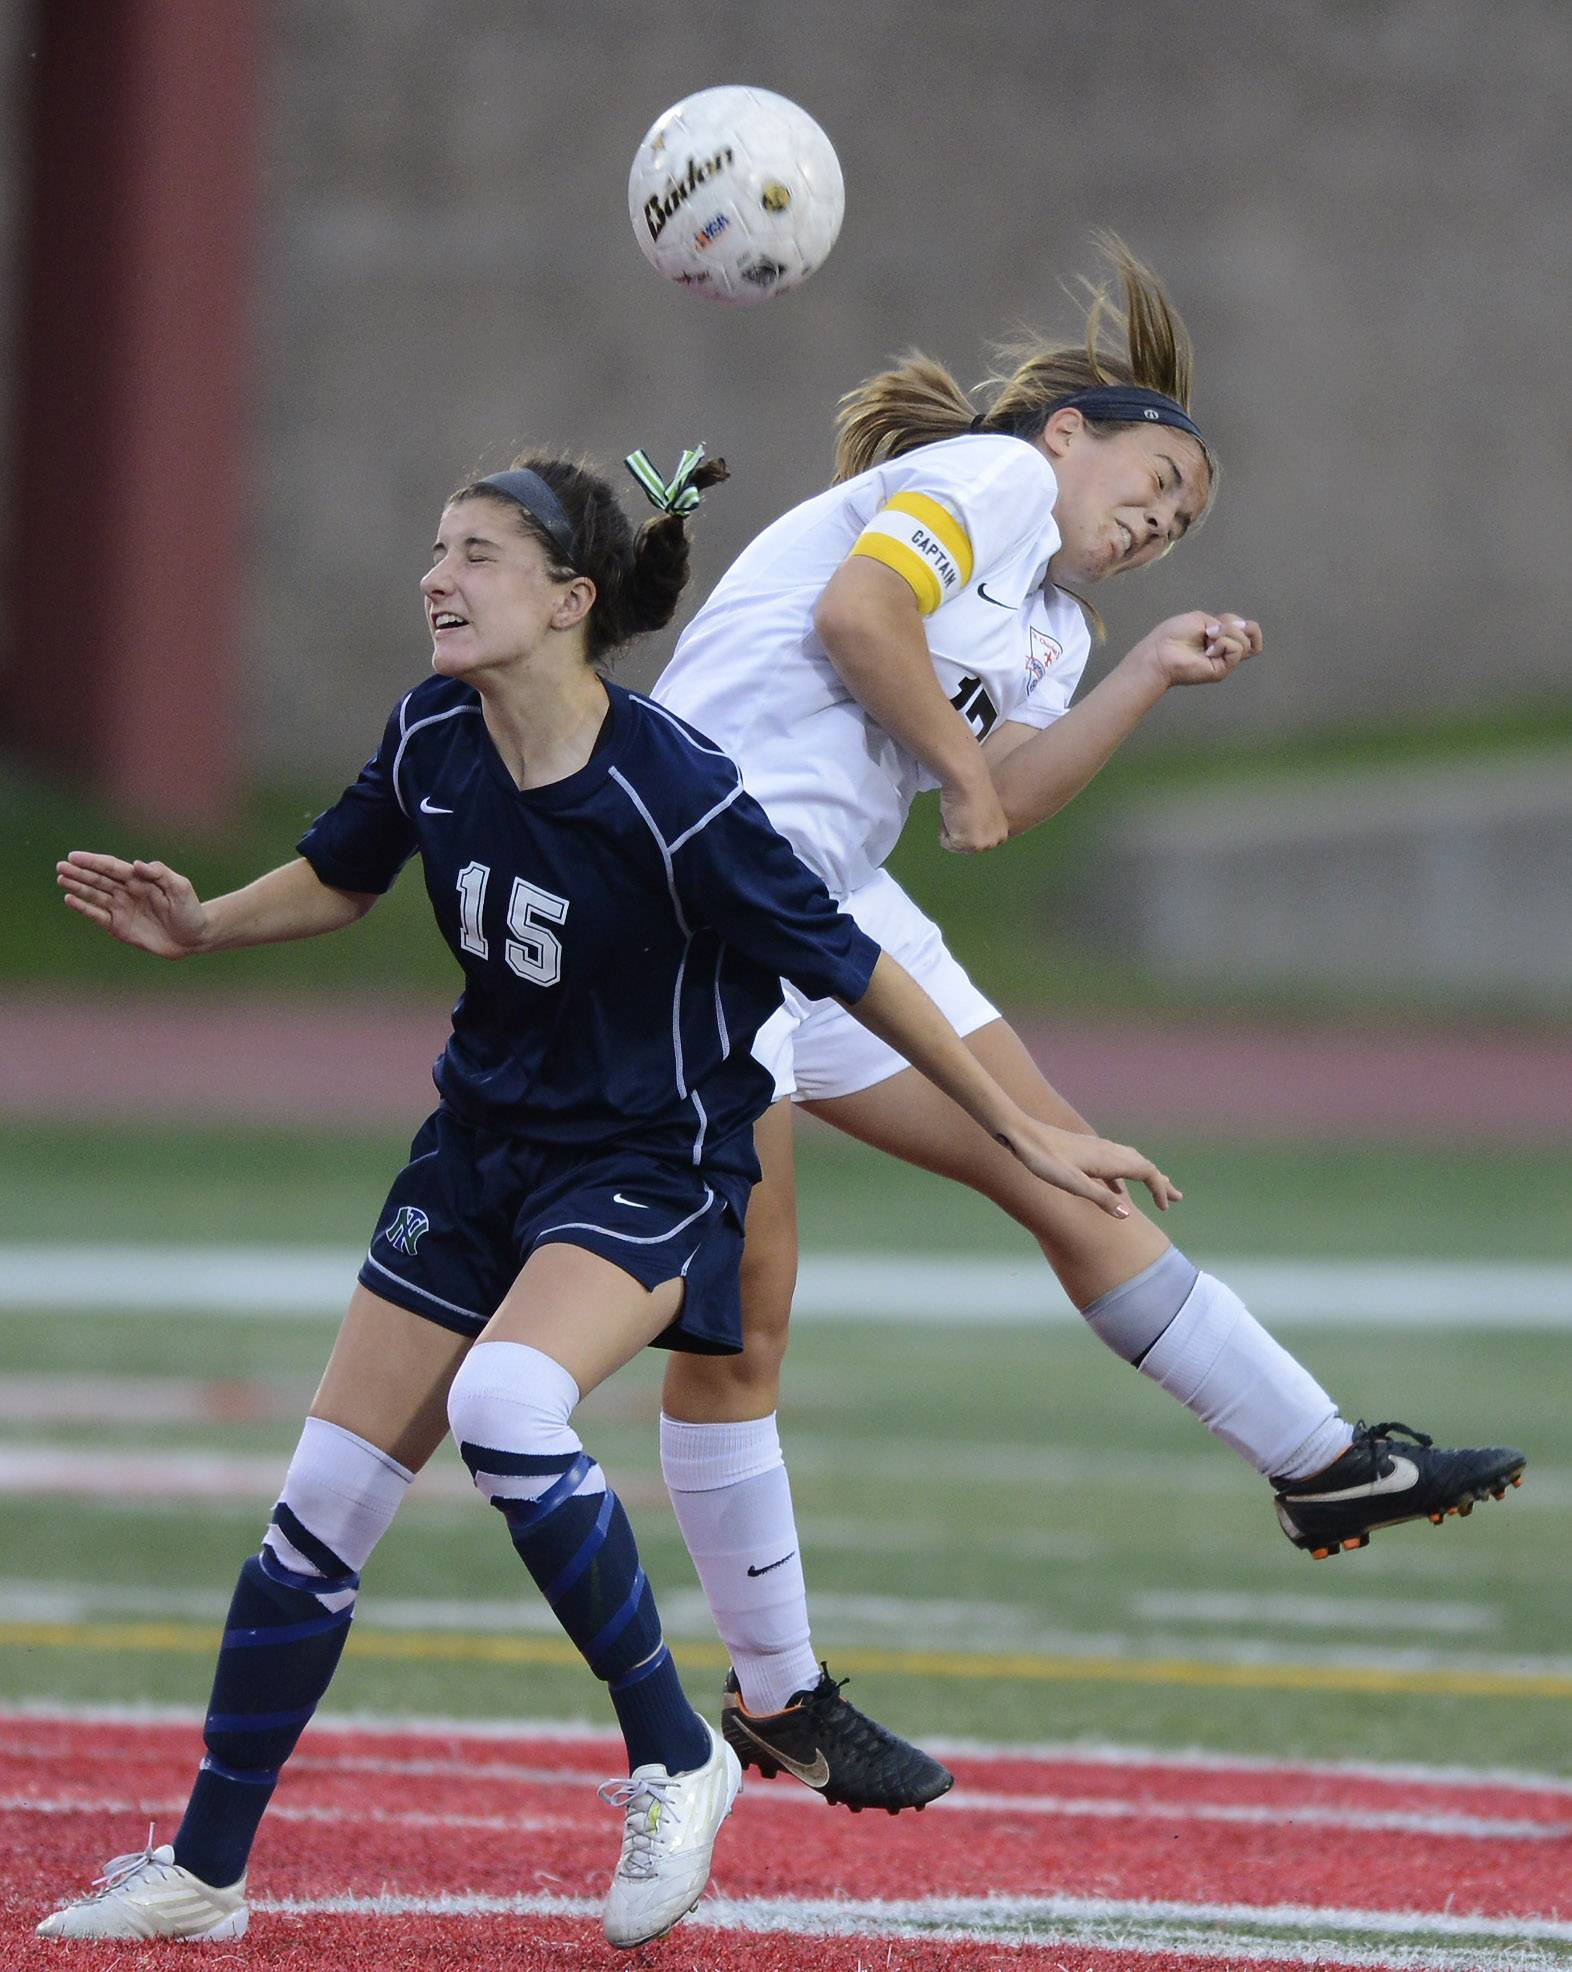 Celia Frei, left, of New Trier and Amanda Hilton of St. Charles East battle for position on a header during the girls soccer Class 3A state final at North Central College in Naperville Saturday.